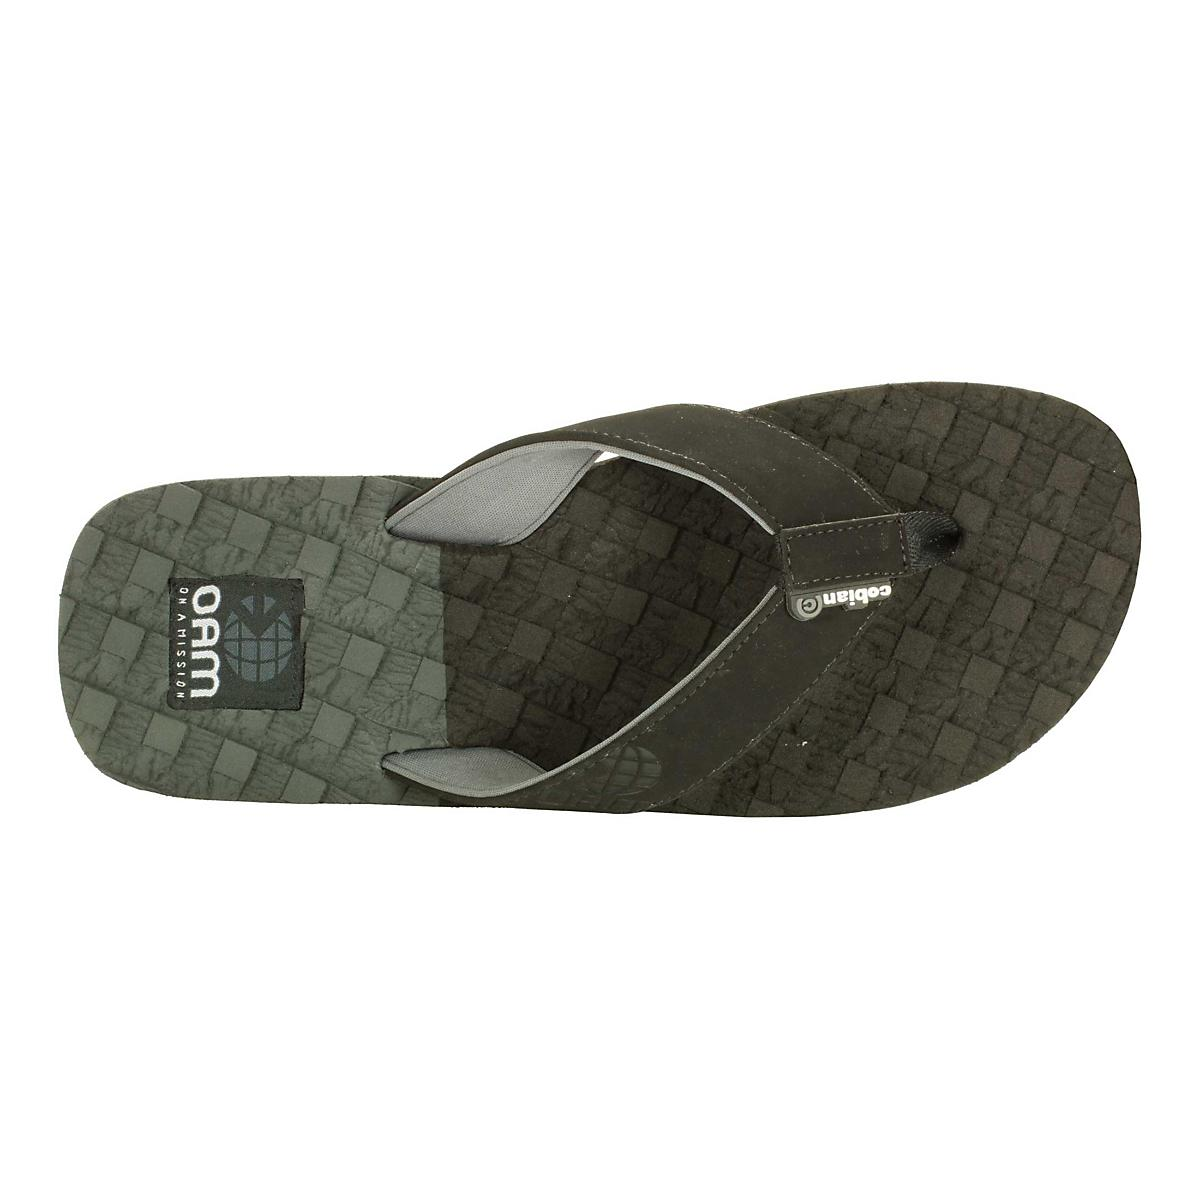 Men's Cobian�OAM Traction